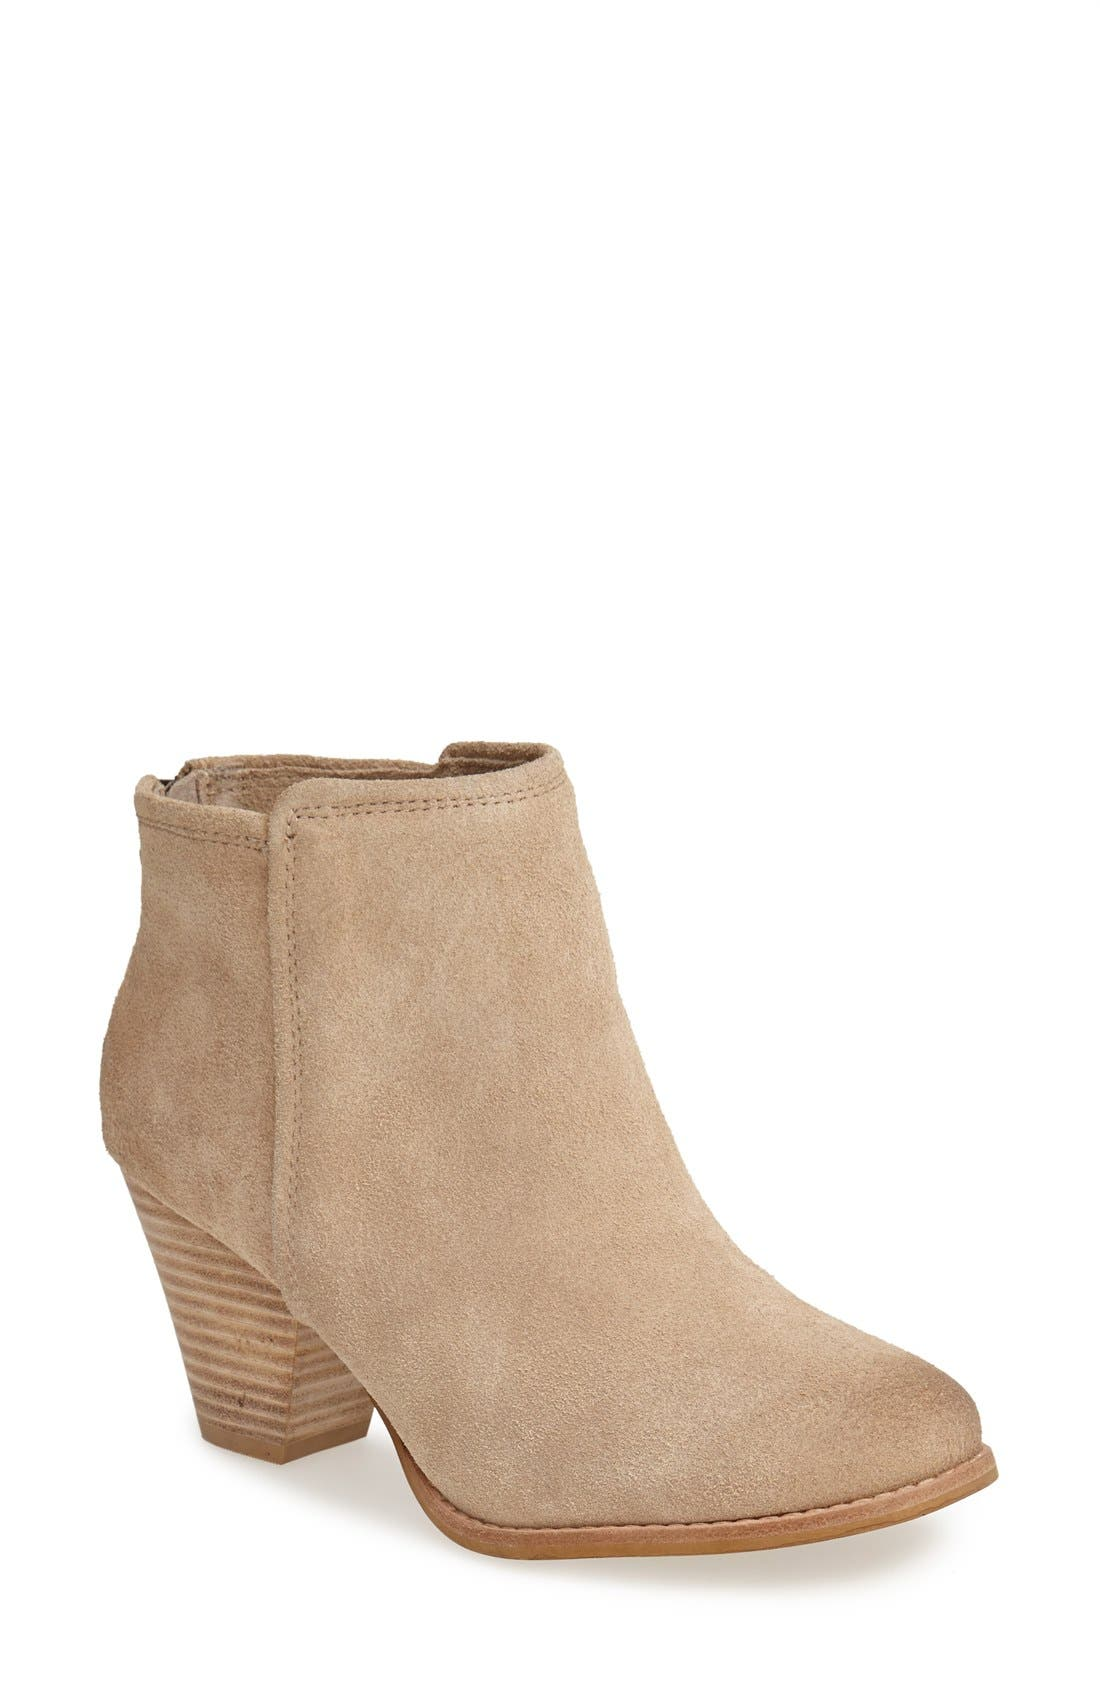 Alternate Image 1 Selected - Splendid 'Roland' Suede Ankle Bootie (Women)